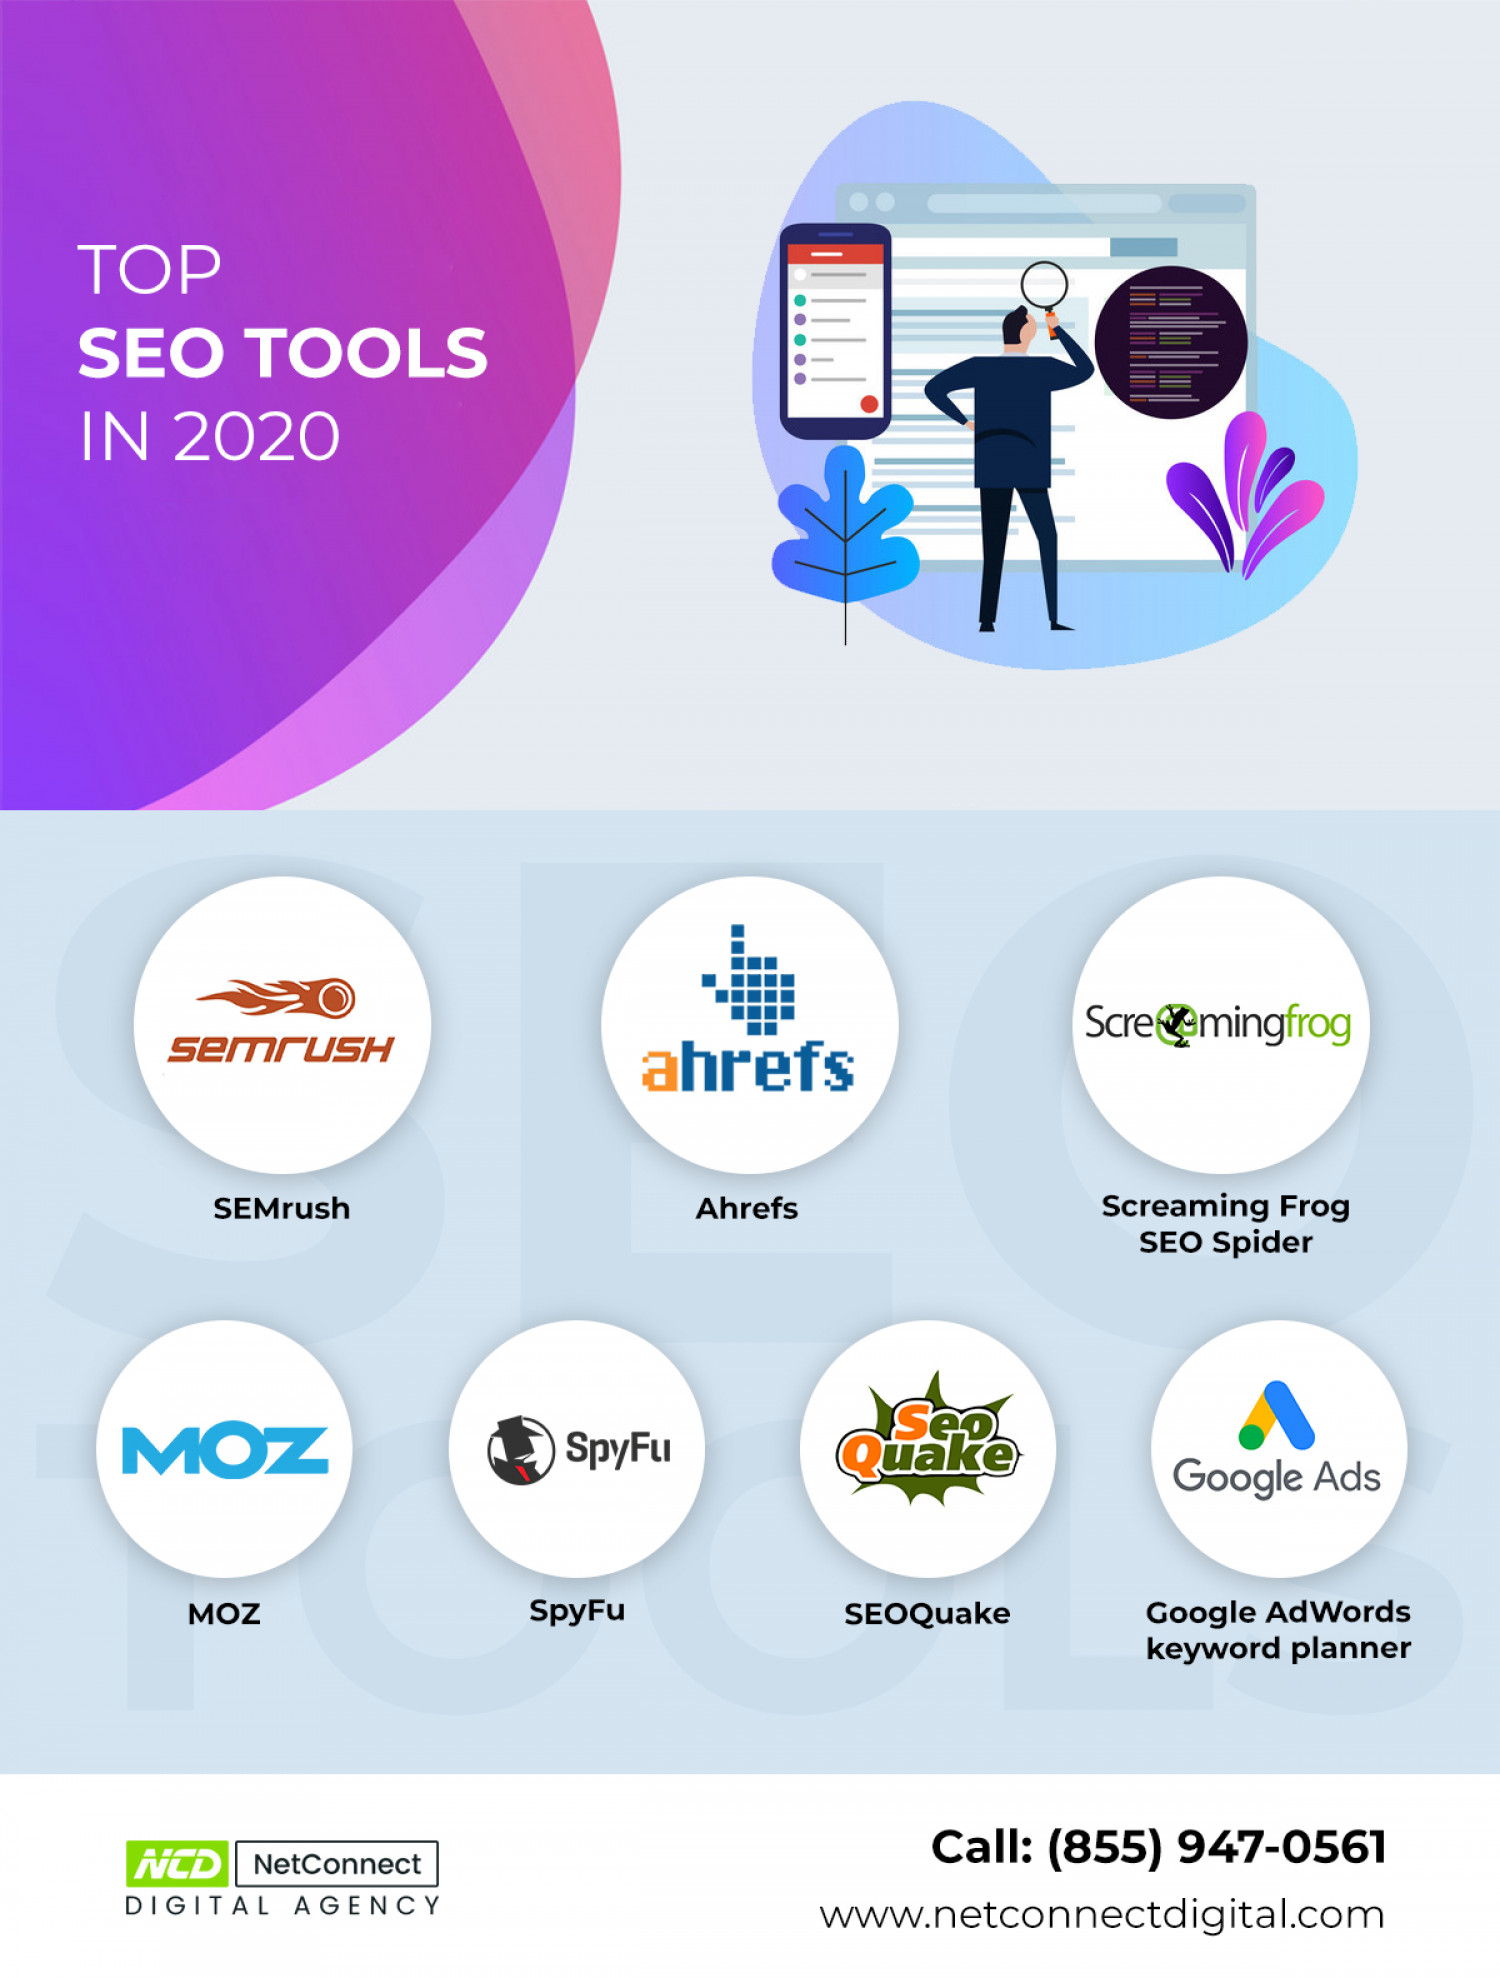 TOP  SEO TOOLS IN 2020 - NetConnect Digital Agency Infographic